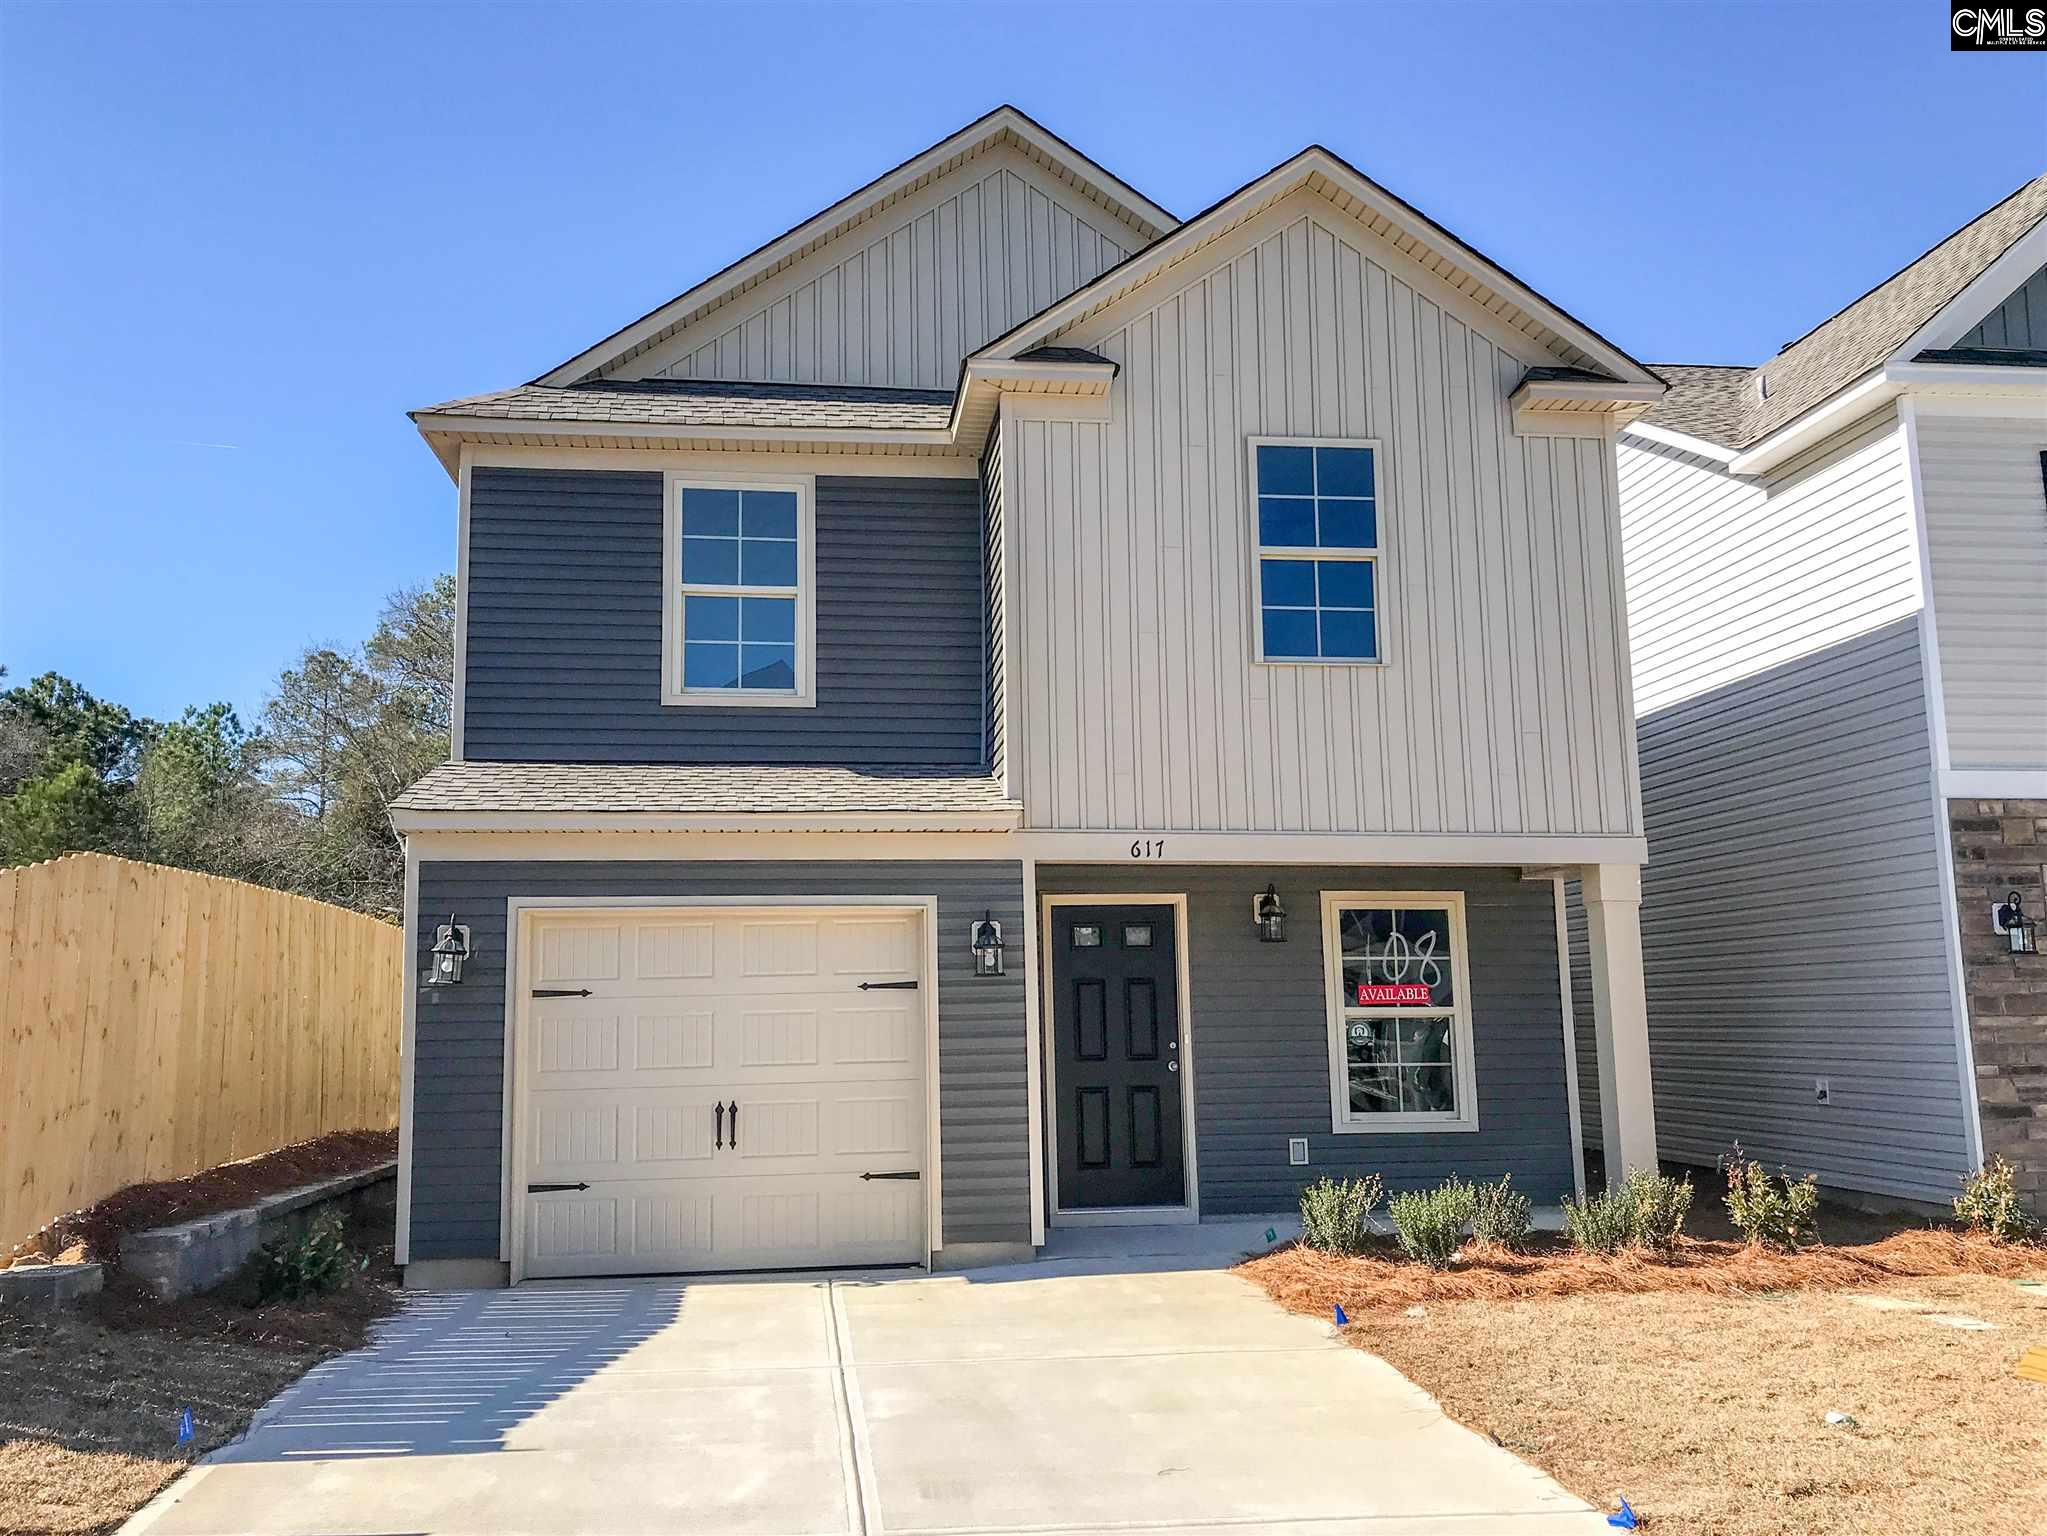 755 Dawsons Park Lexington, SC 29072